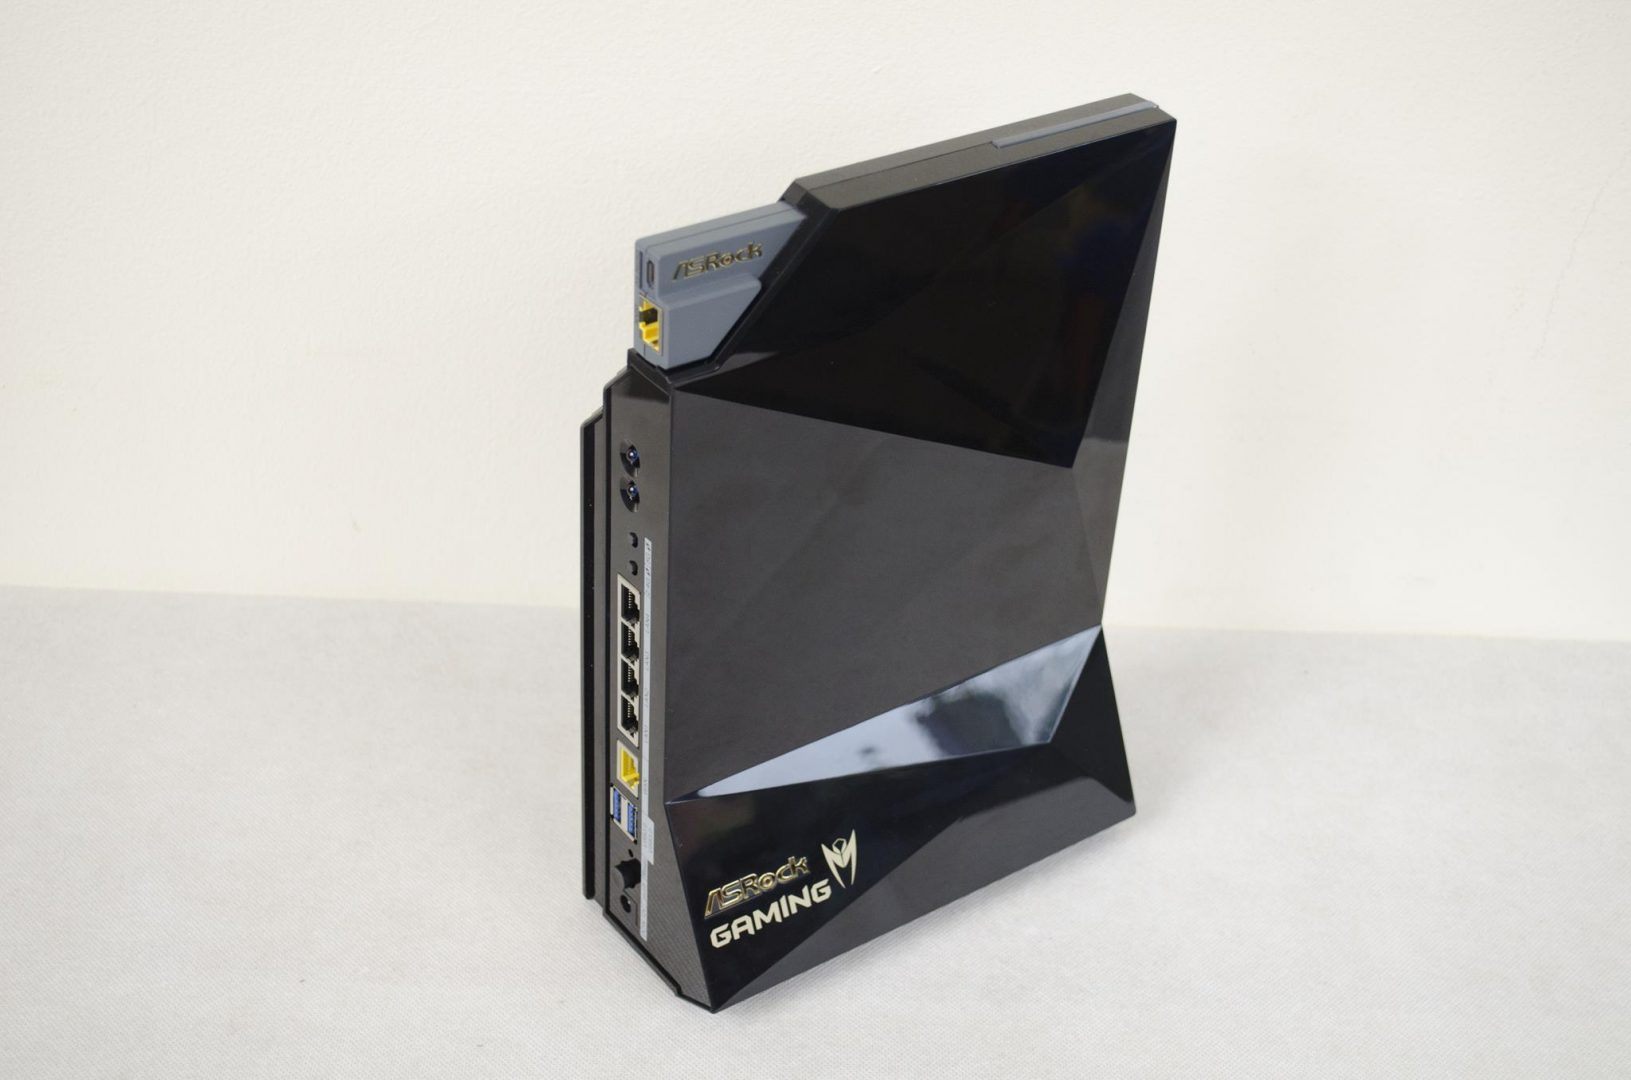 ASRock G10 Gaming AC2600 WiFi Router with H2R HDMI Dongle Review